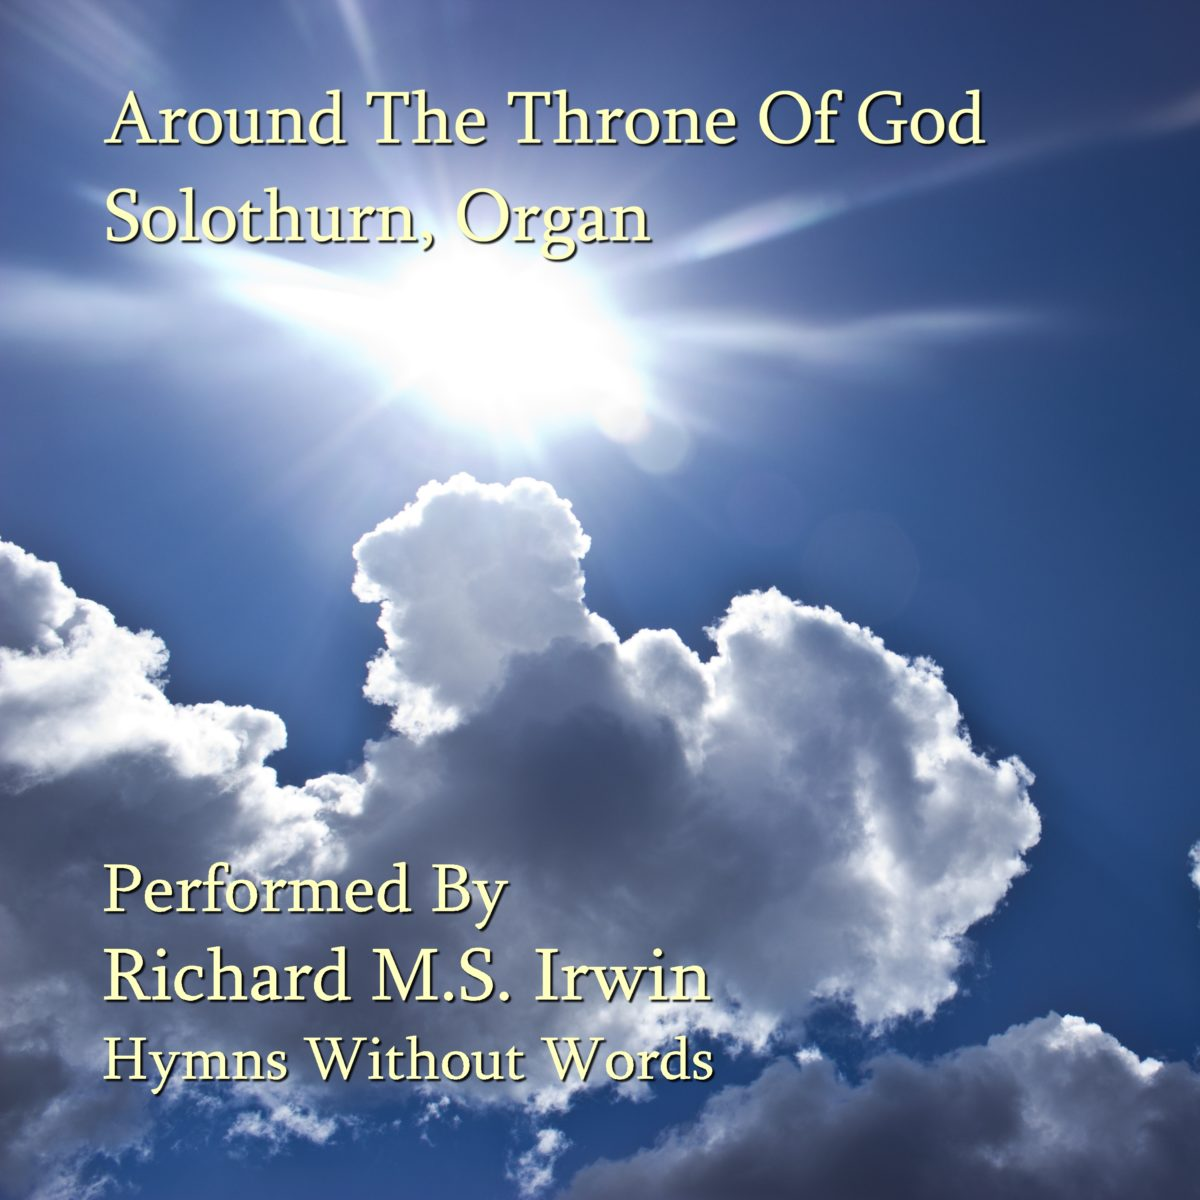 Around The Throne Of God (Solothurn, Organ, 4 Verses)